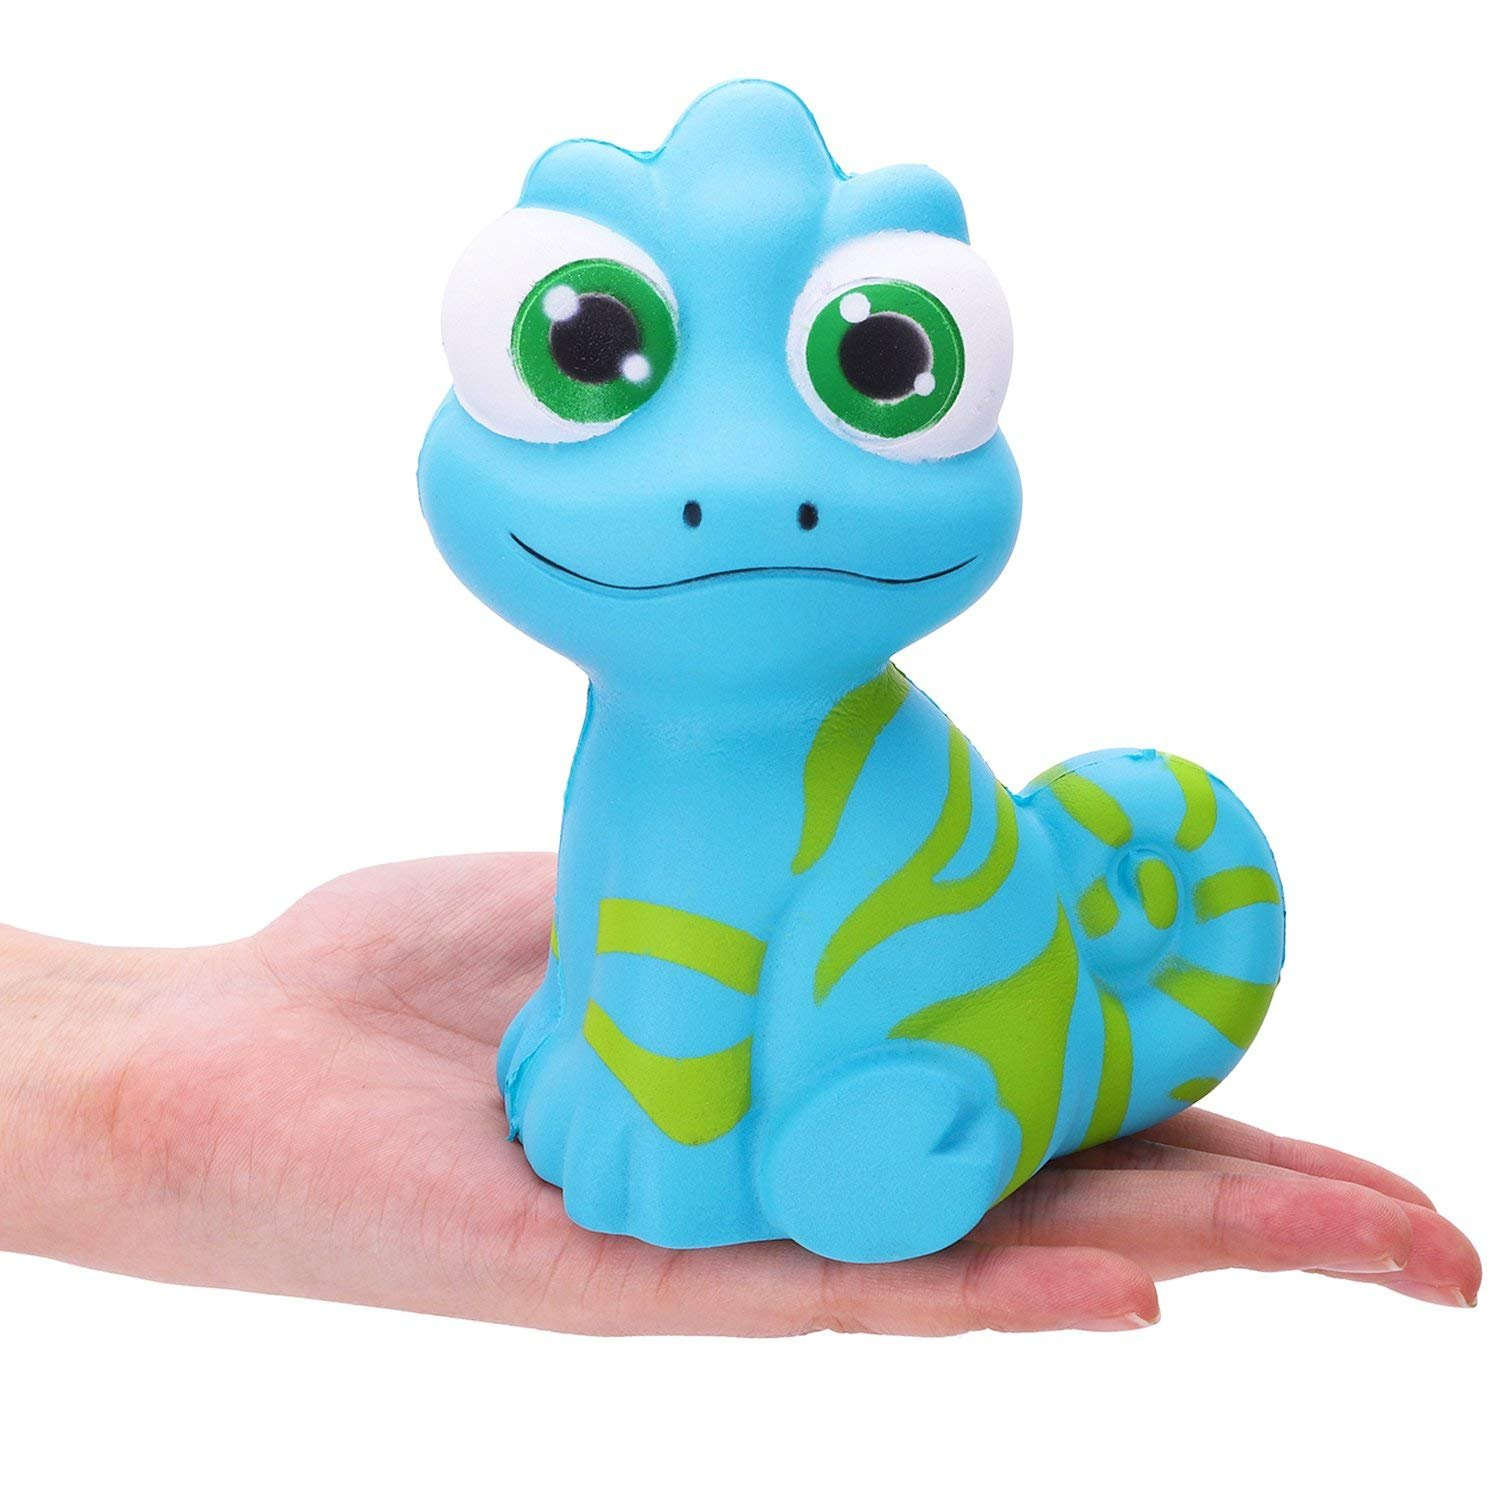 R.Horse Squishy Kawaii Cute Chameleon Cream Scented Squishies Slow Rising Kids Toys Doll Stress Relief Toy Hop Props, Decorative Props Large (Cute Chameleon)